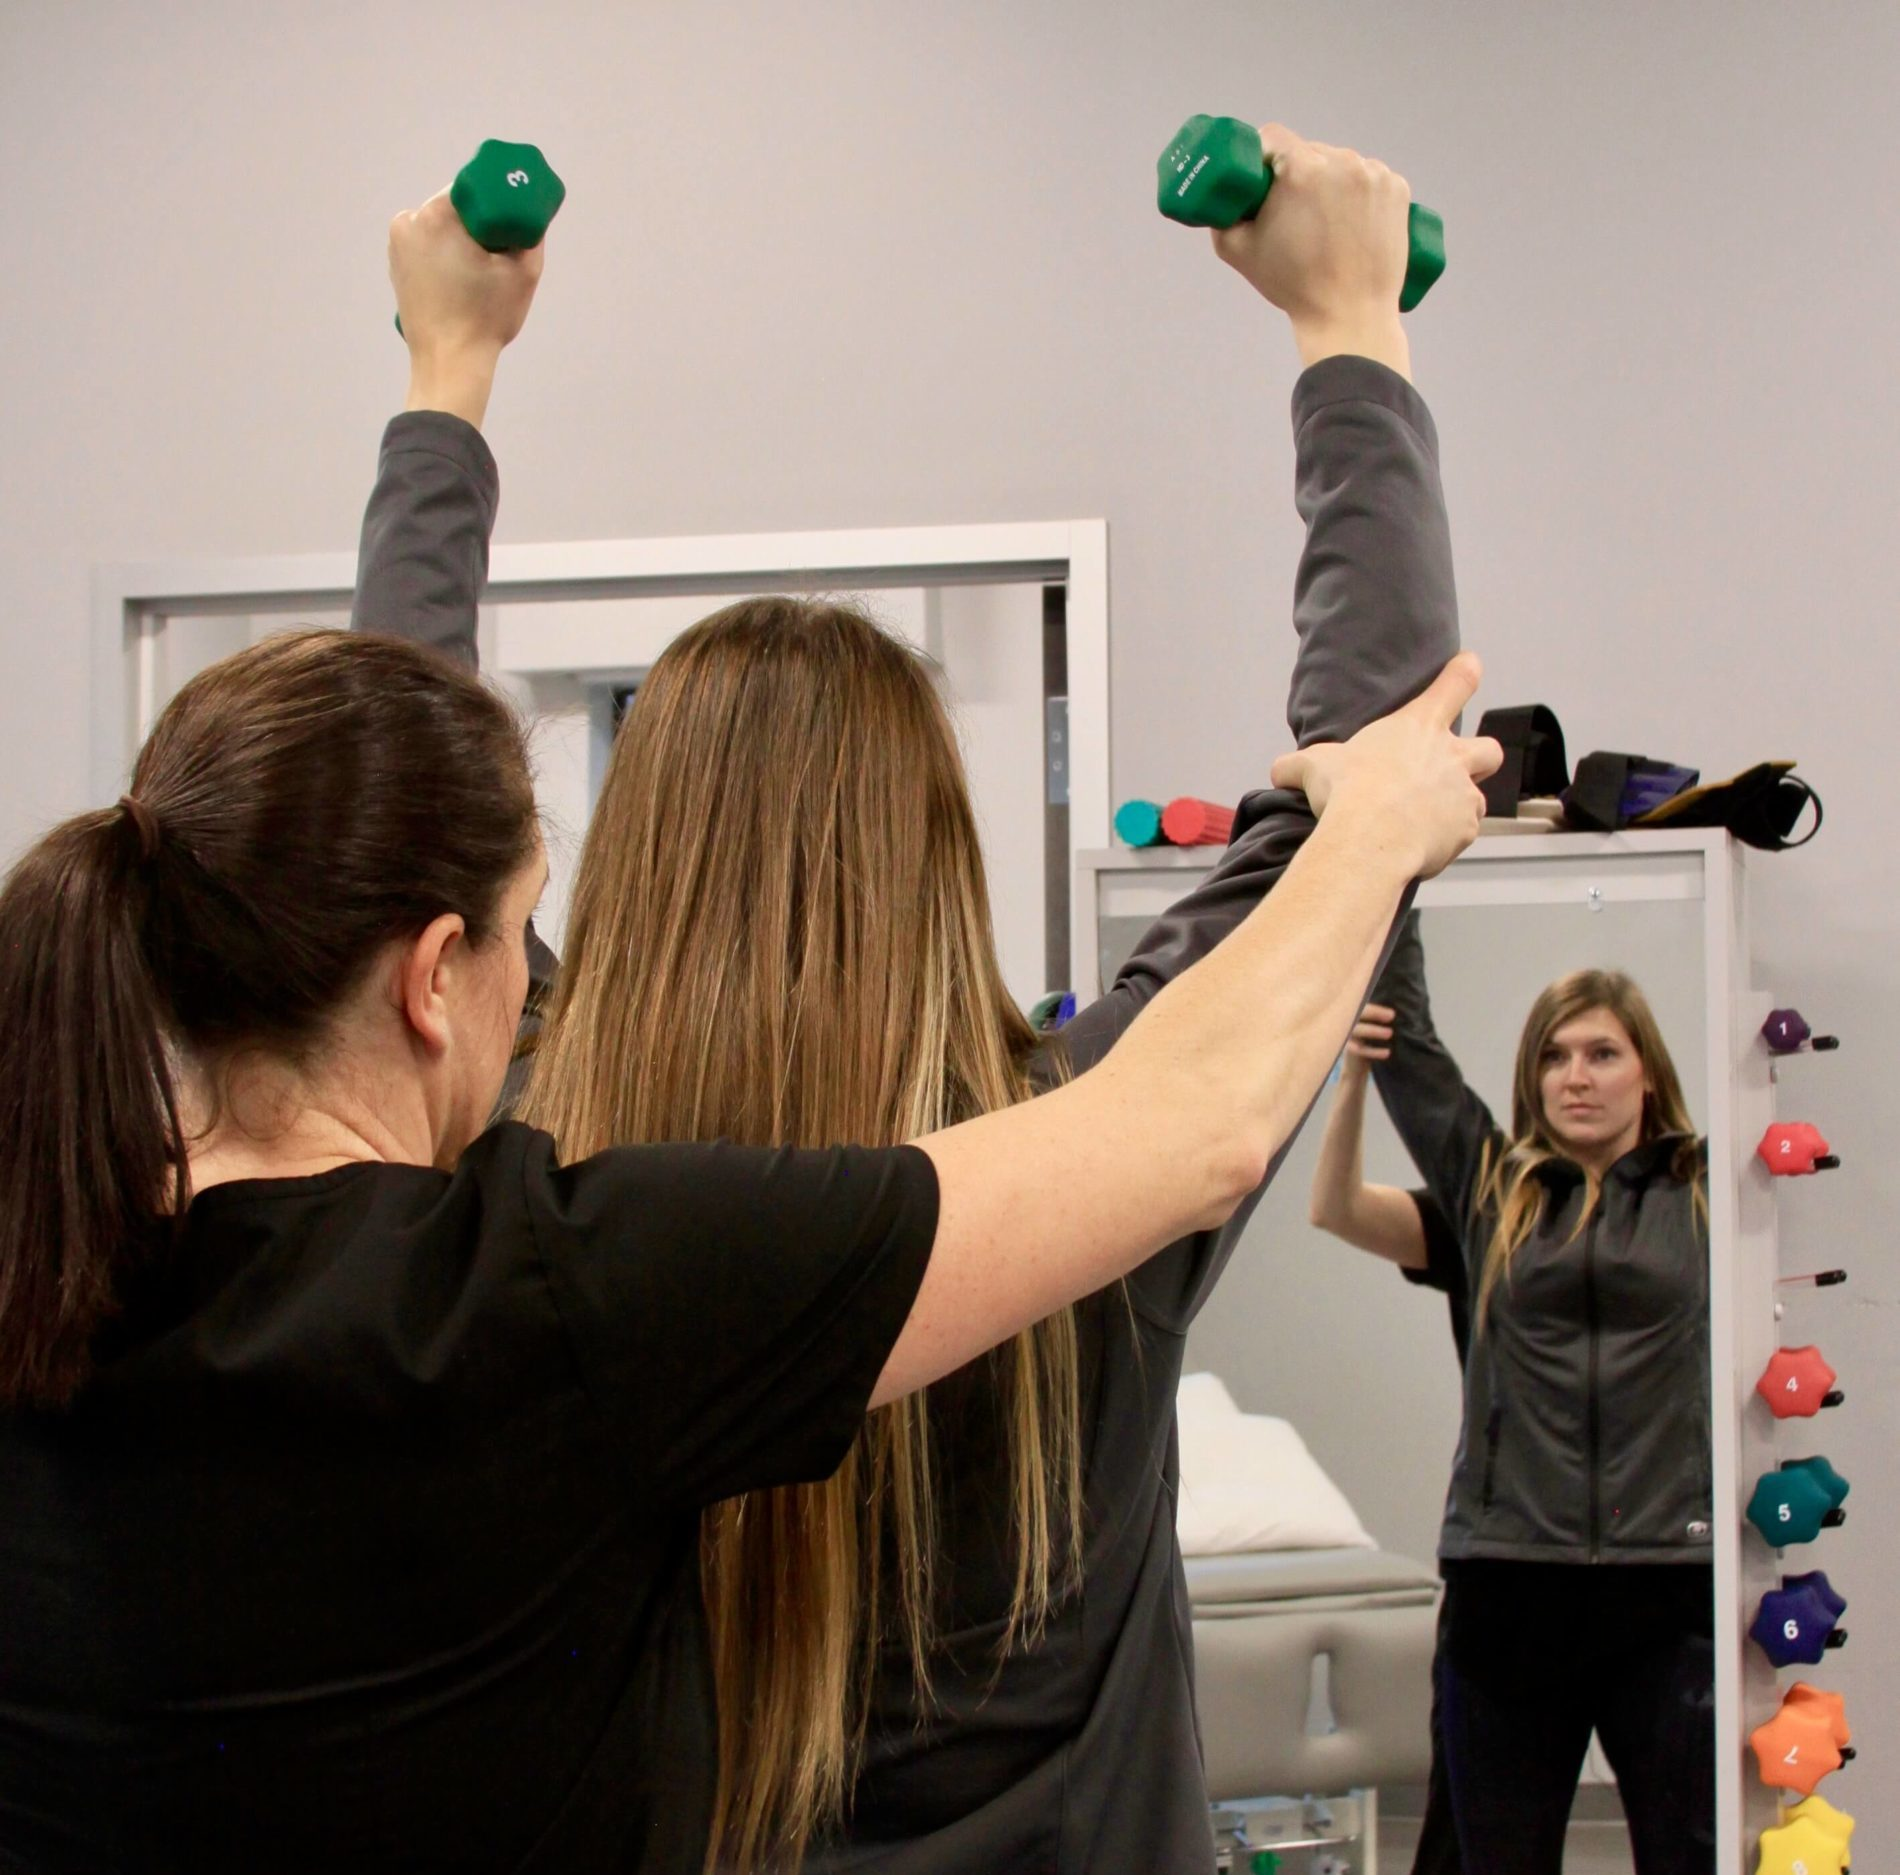 Physical therapist assisting young woman with weights during therapy.